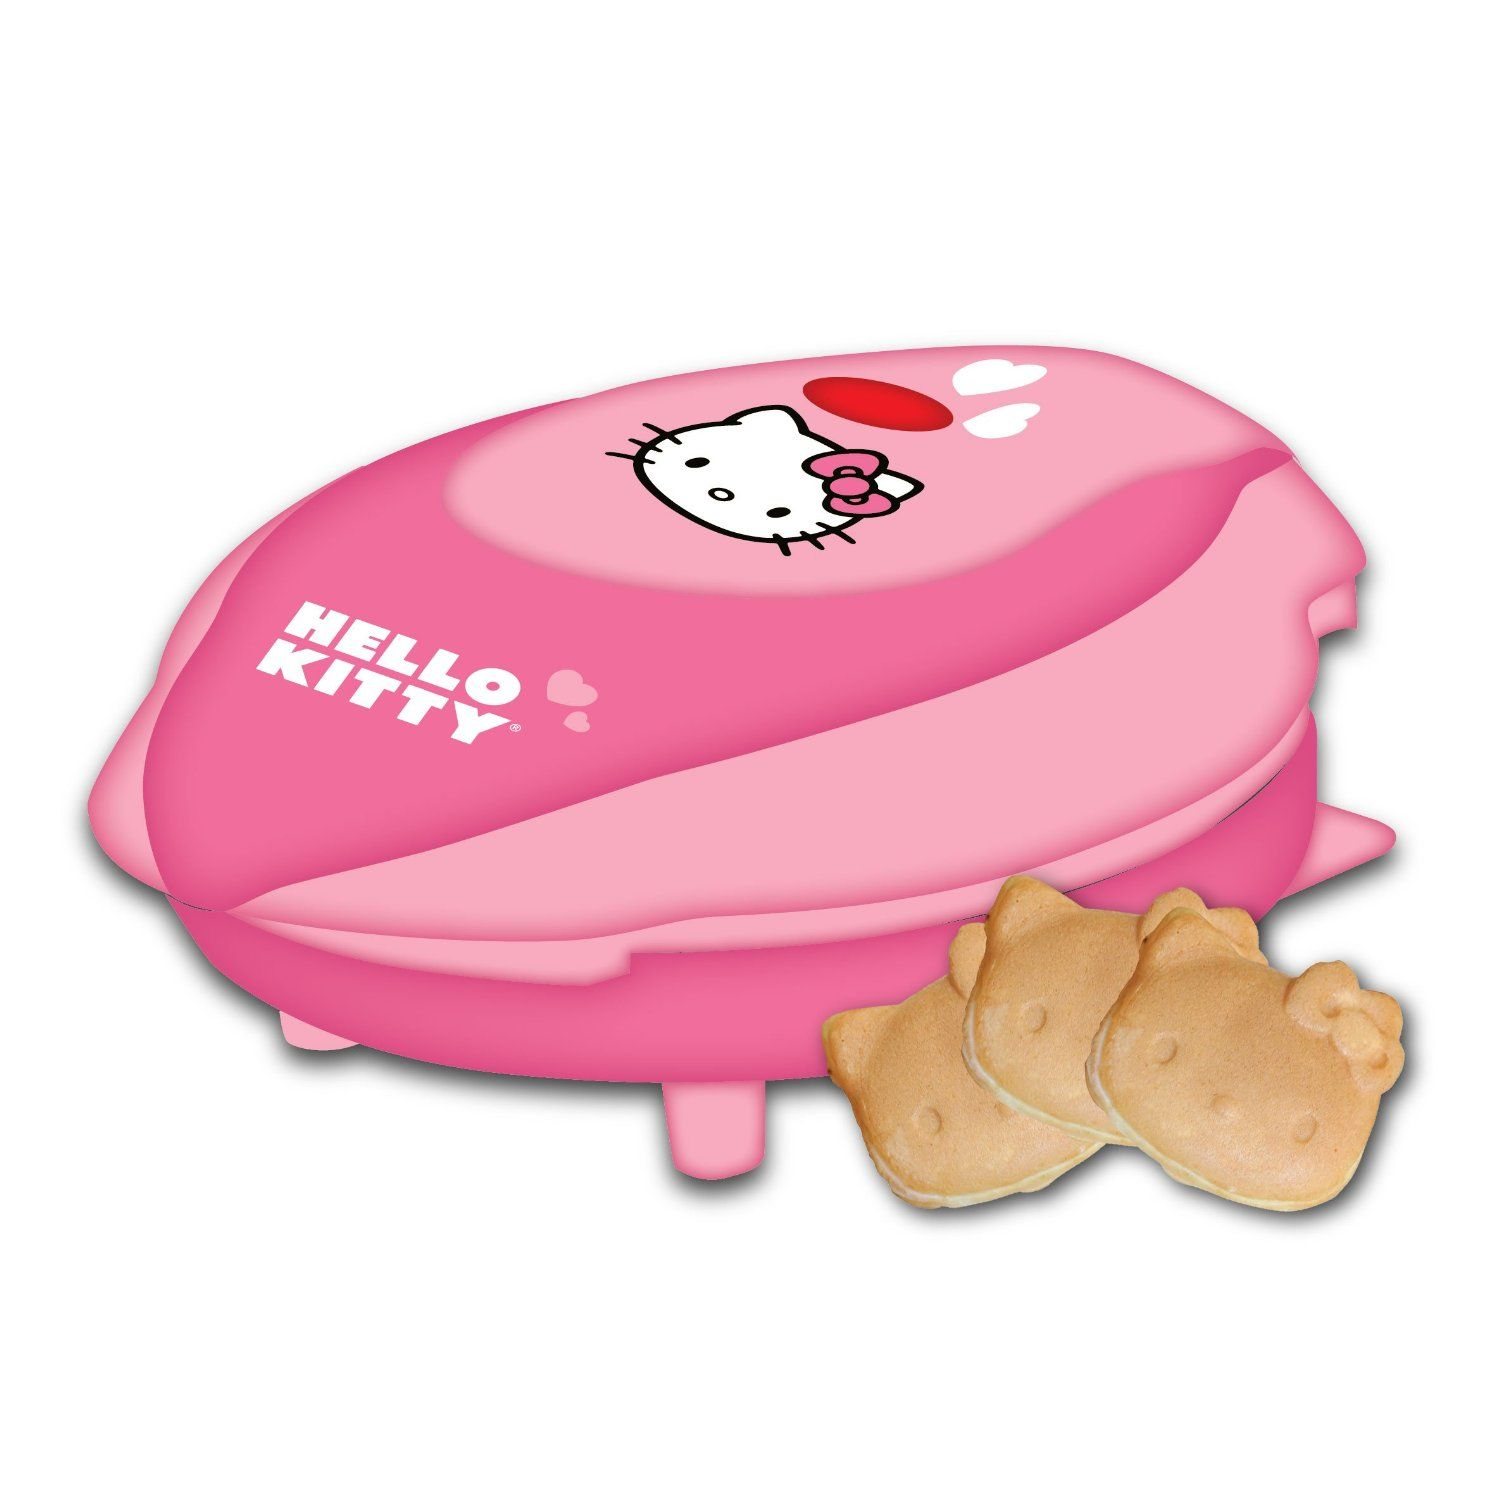 Hello Kitty Waffle Maker | my pins | Pinterest | Hello kitty, Hello ...